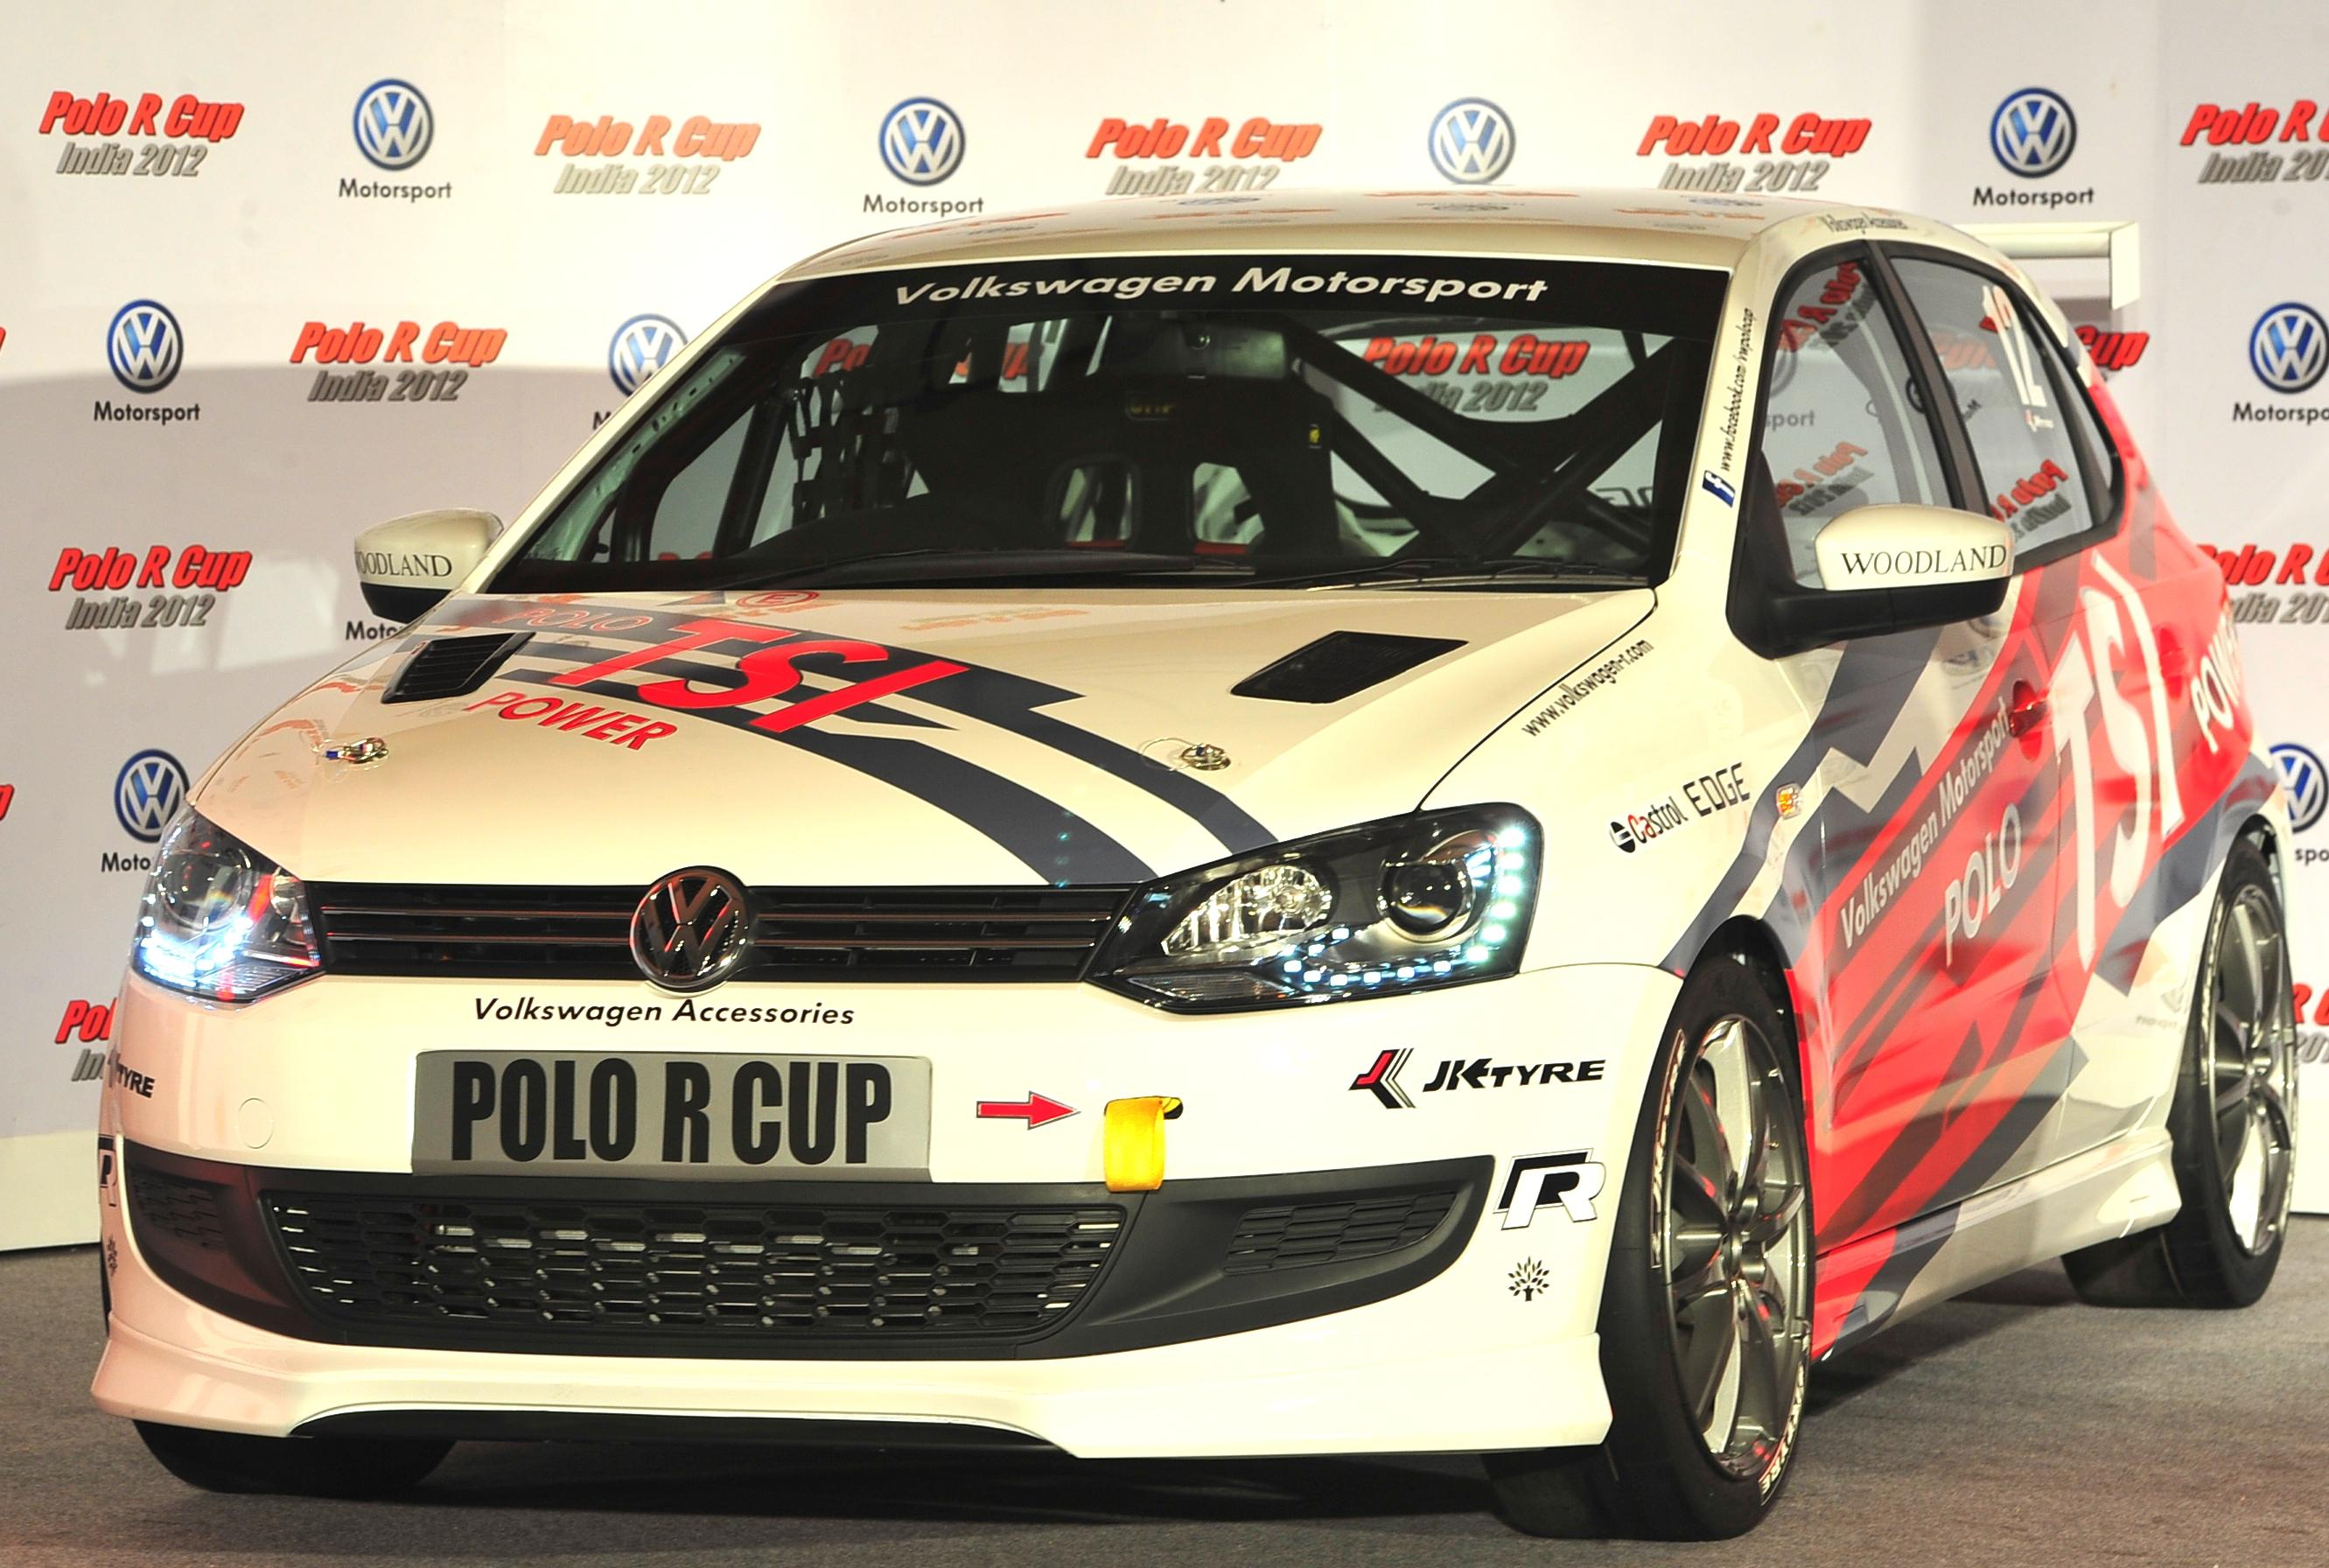 The-all-new-Race-Polo-for-Volkswagen-Polo-R-Cup-2012